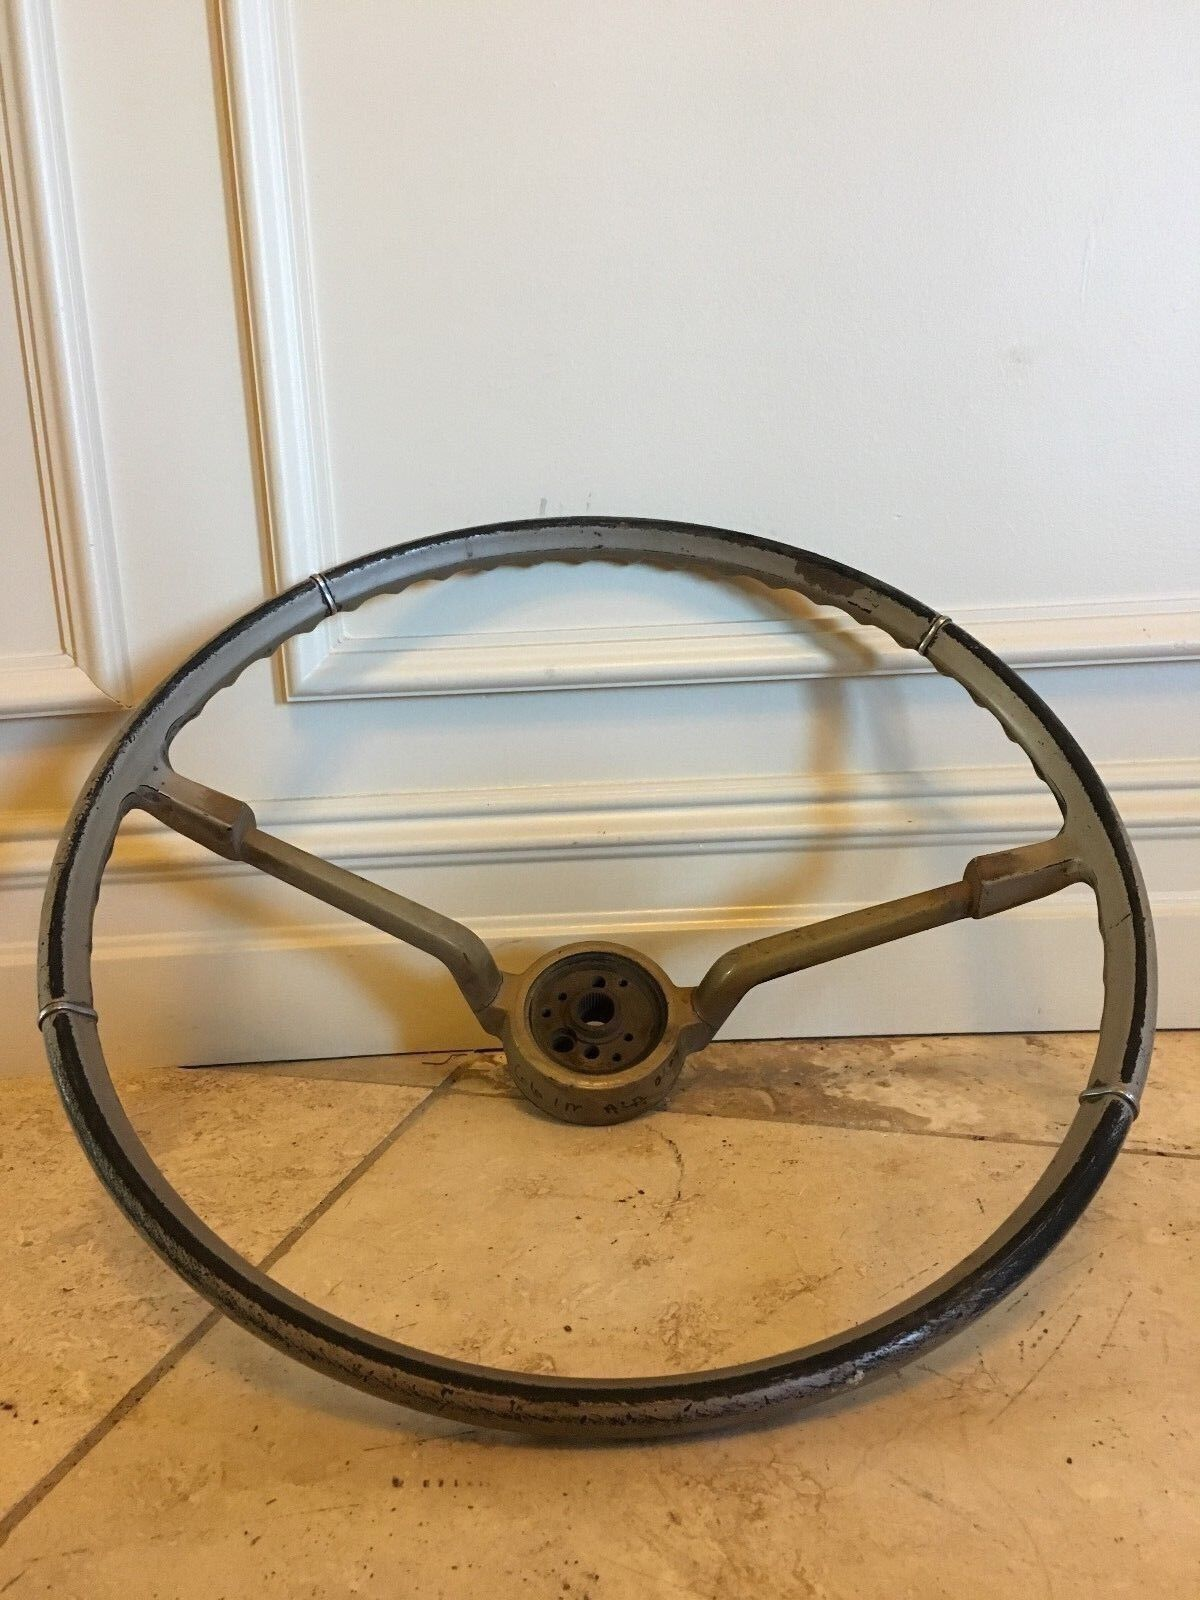 Used Chevrolet Bel Air Steering Wheels And Horns For Sale 1966 Impala 1965 Chevy Ss Super Sport Biscayne Wheel